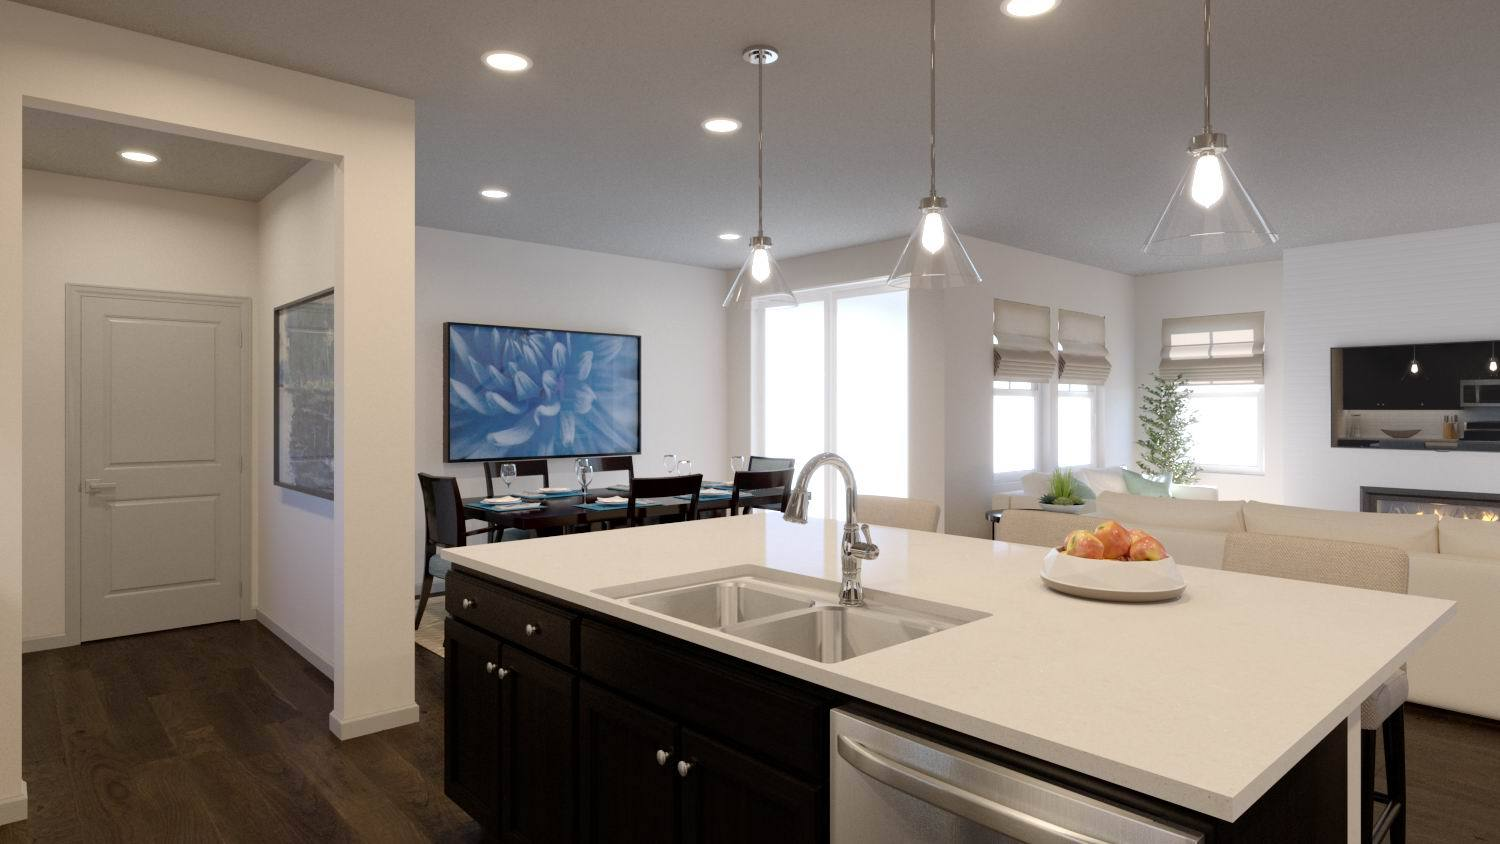 Kitchen featured in the Residence 3205 By TRI Pointe Homes in Denver, CO